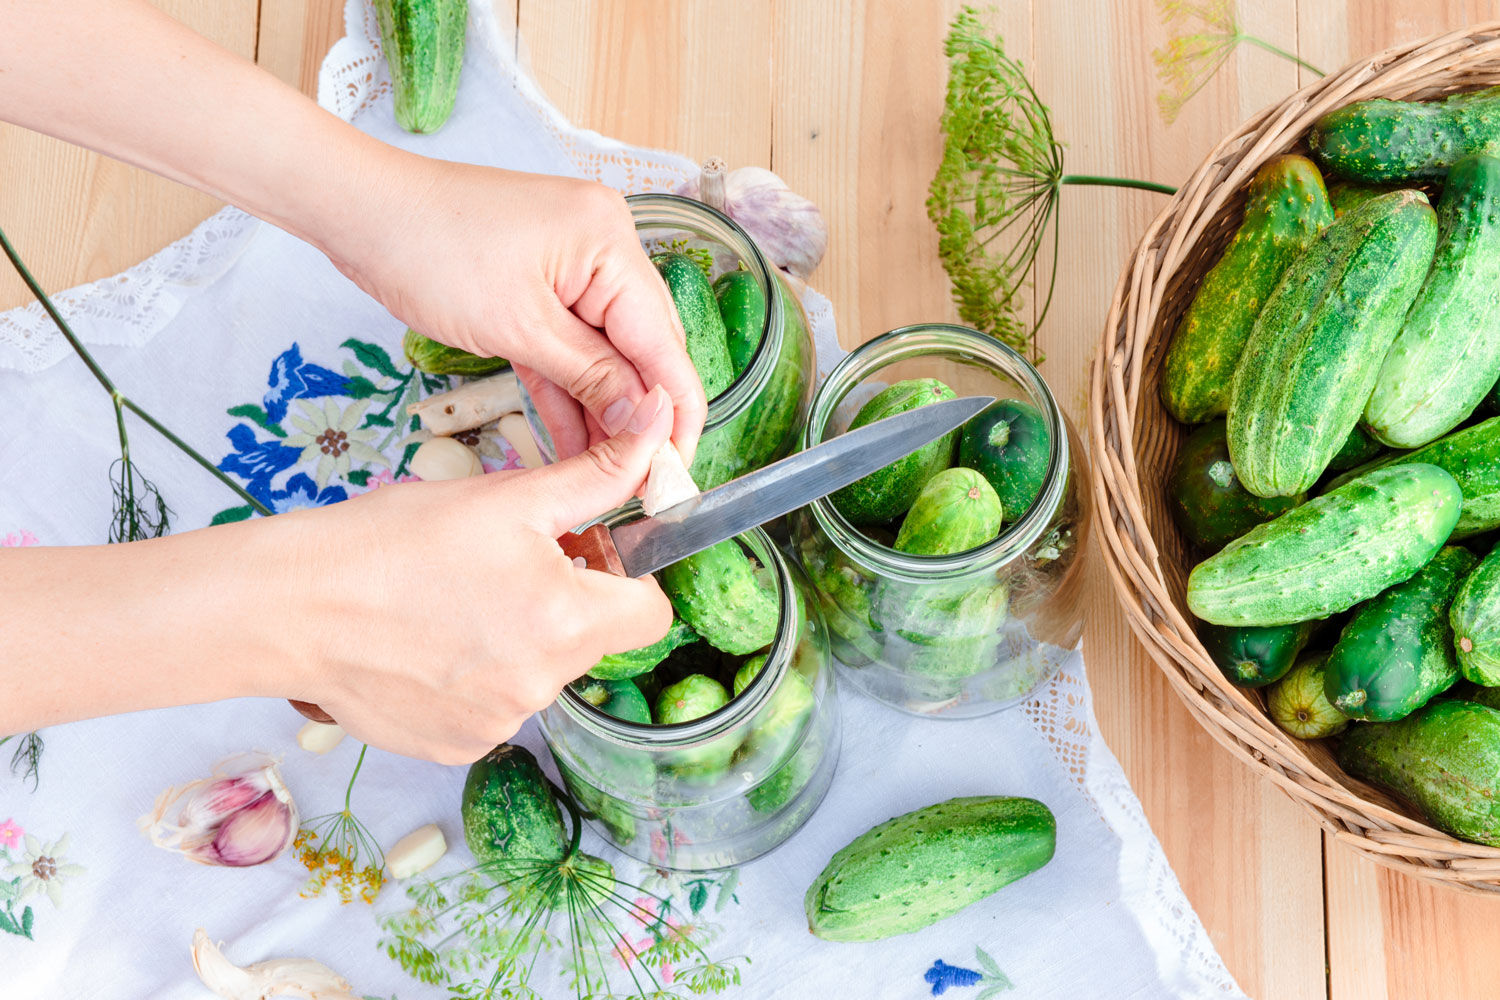 Short, thick cucumbers placed in glass jars waiting to be pickled with ginger and garlic.